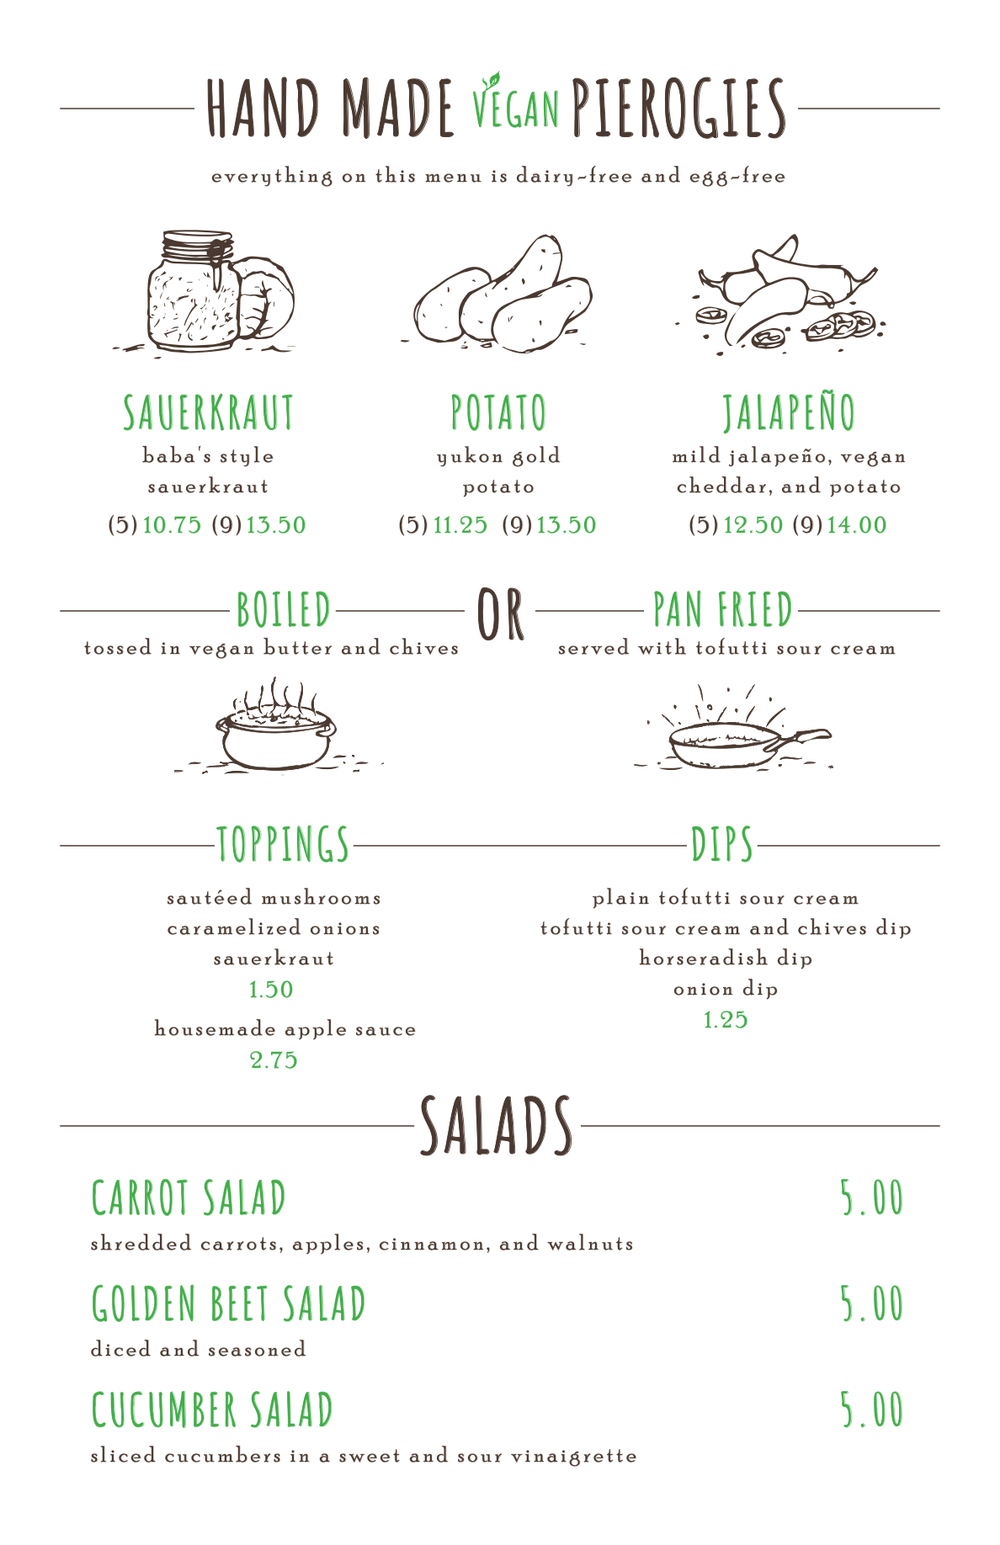 This menu is dairy-free, egg-free, and contains no animal products in the dough or the fillings. We use Earth's Balance vegan butter as well as Tofutti brands for sour cream and cream cheese. We maintain safe practices in the kitchen to keep the vegan items away from the meat items, however, all pierogies are cooked on the same equipment.      If you have any other questions please ask!